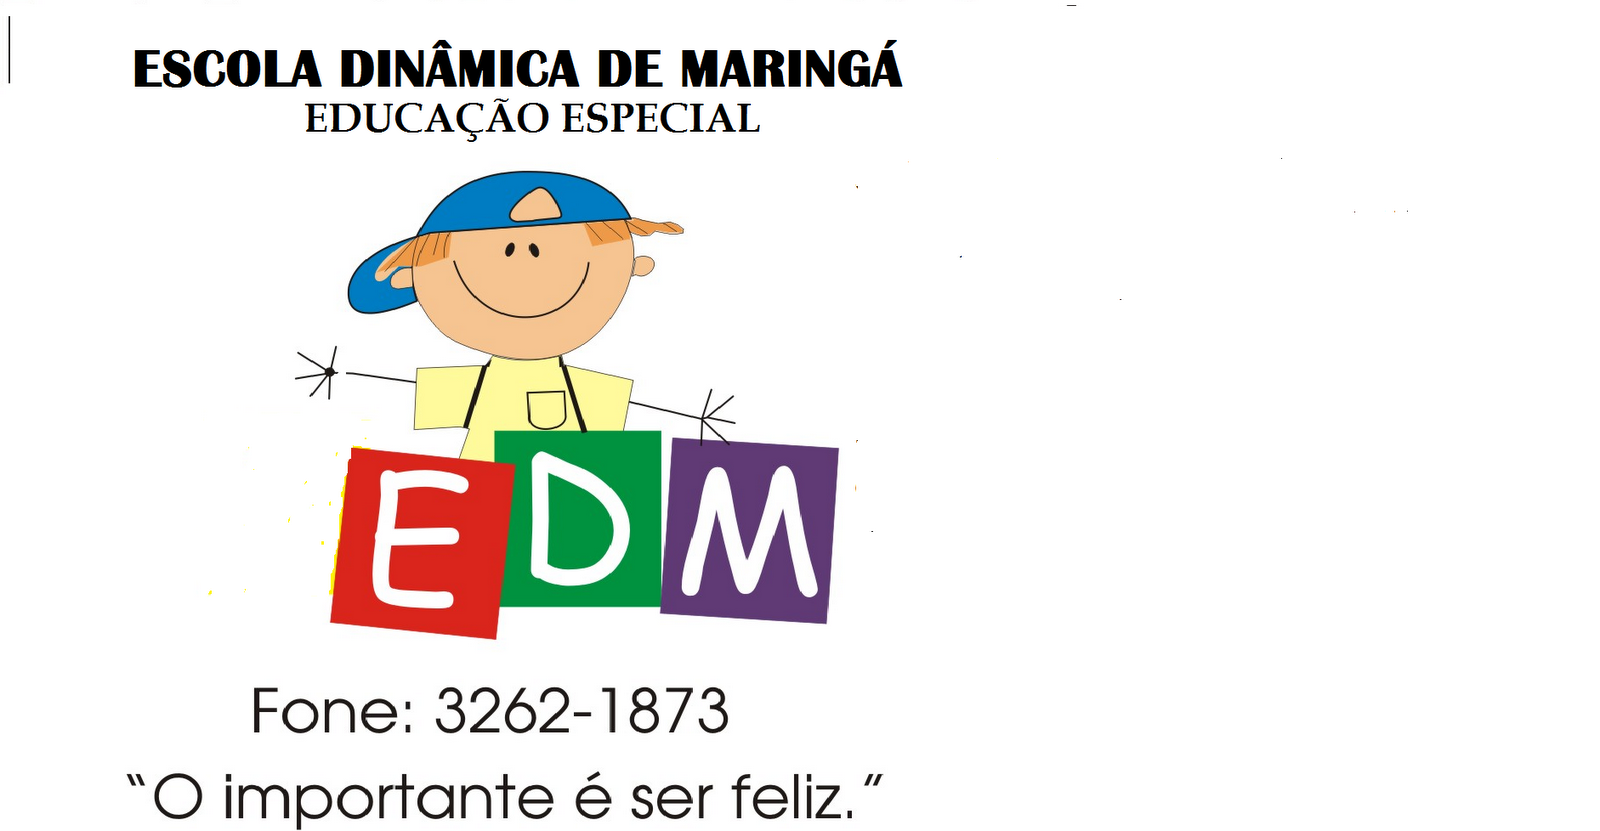 ESCOLA DINMICA DE MARING- 15 ANOS